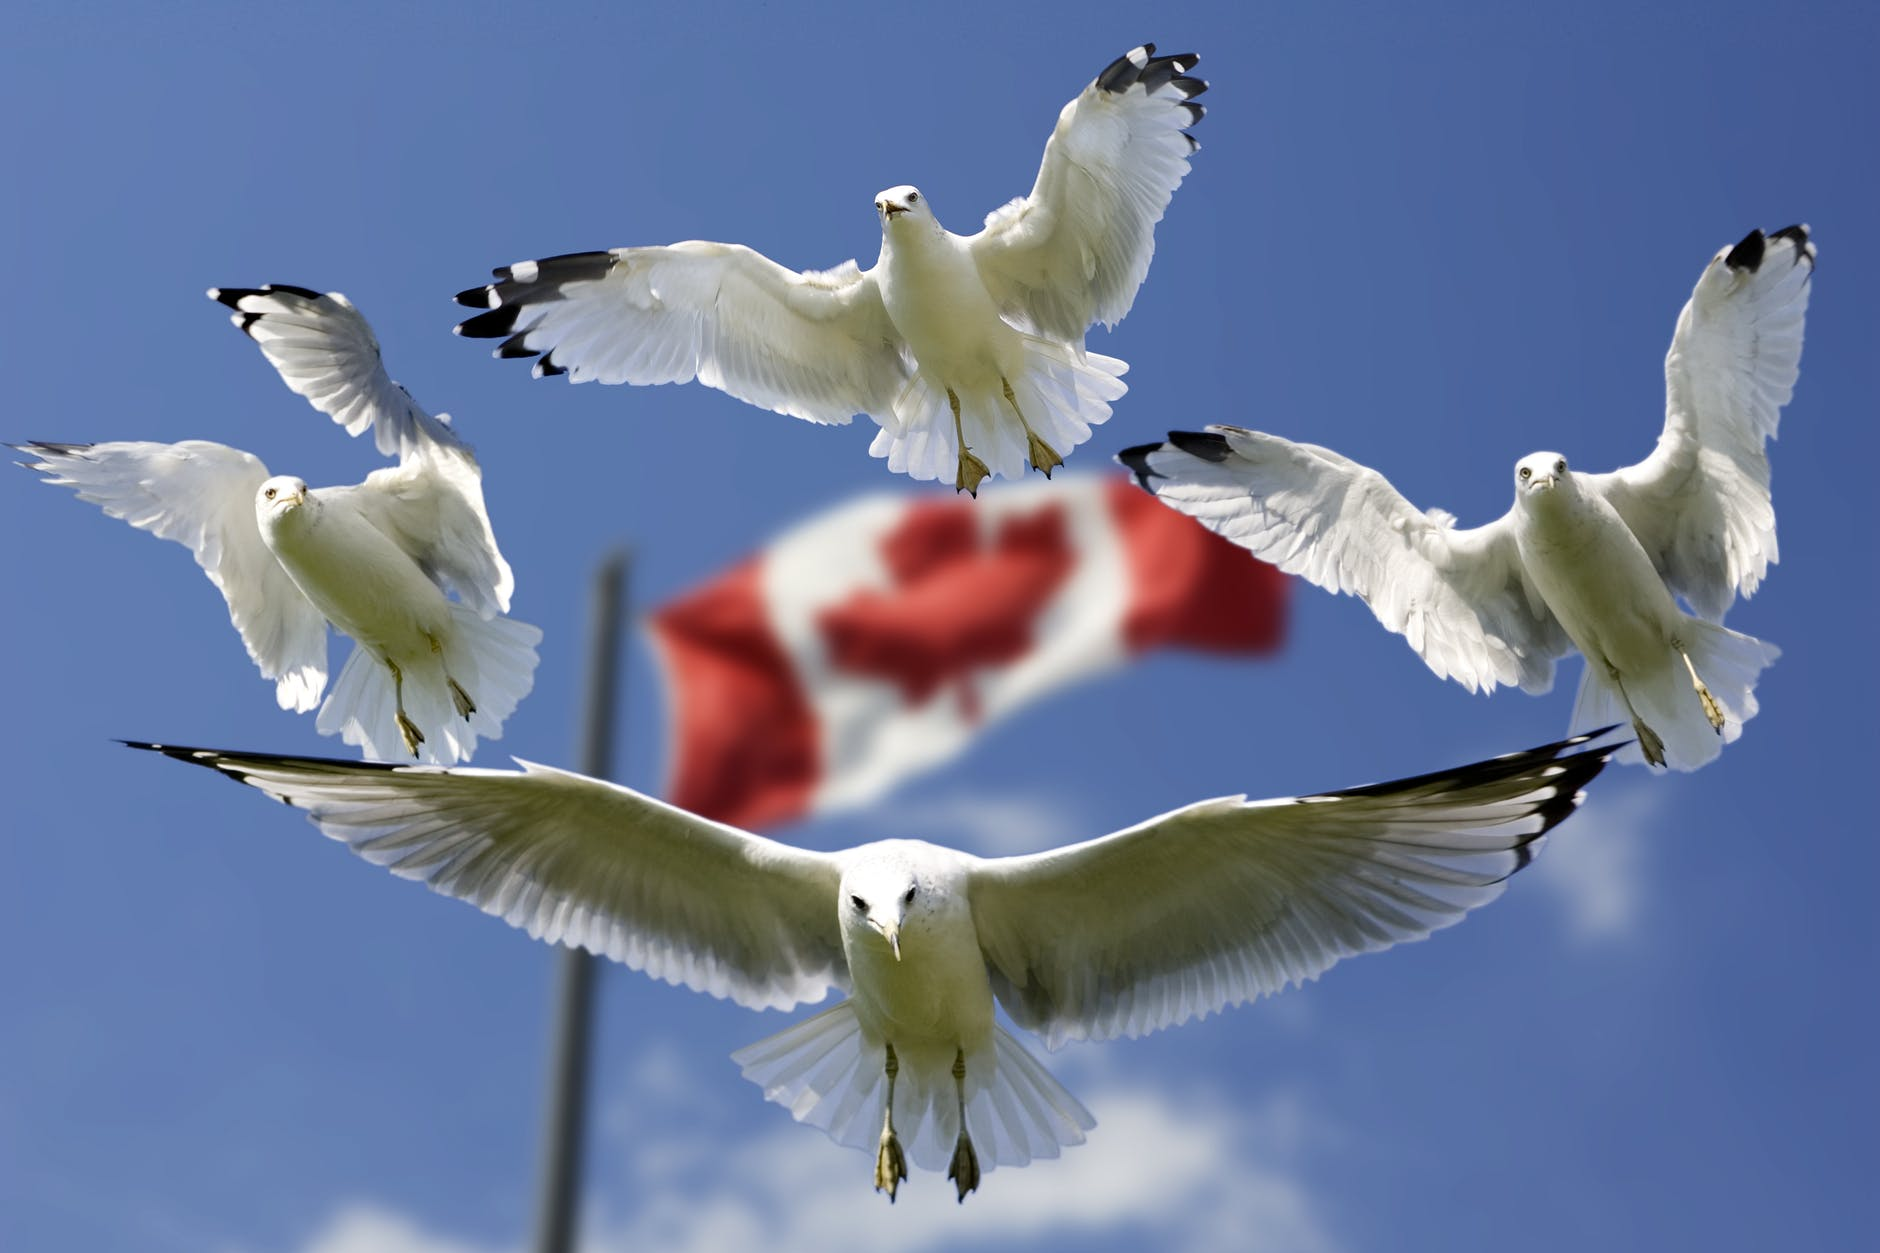 Seagulls surrounding the Canadian flag. By moving to Ottawa, you get to experience all of the benefits of living in this country.